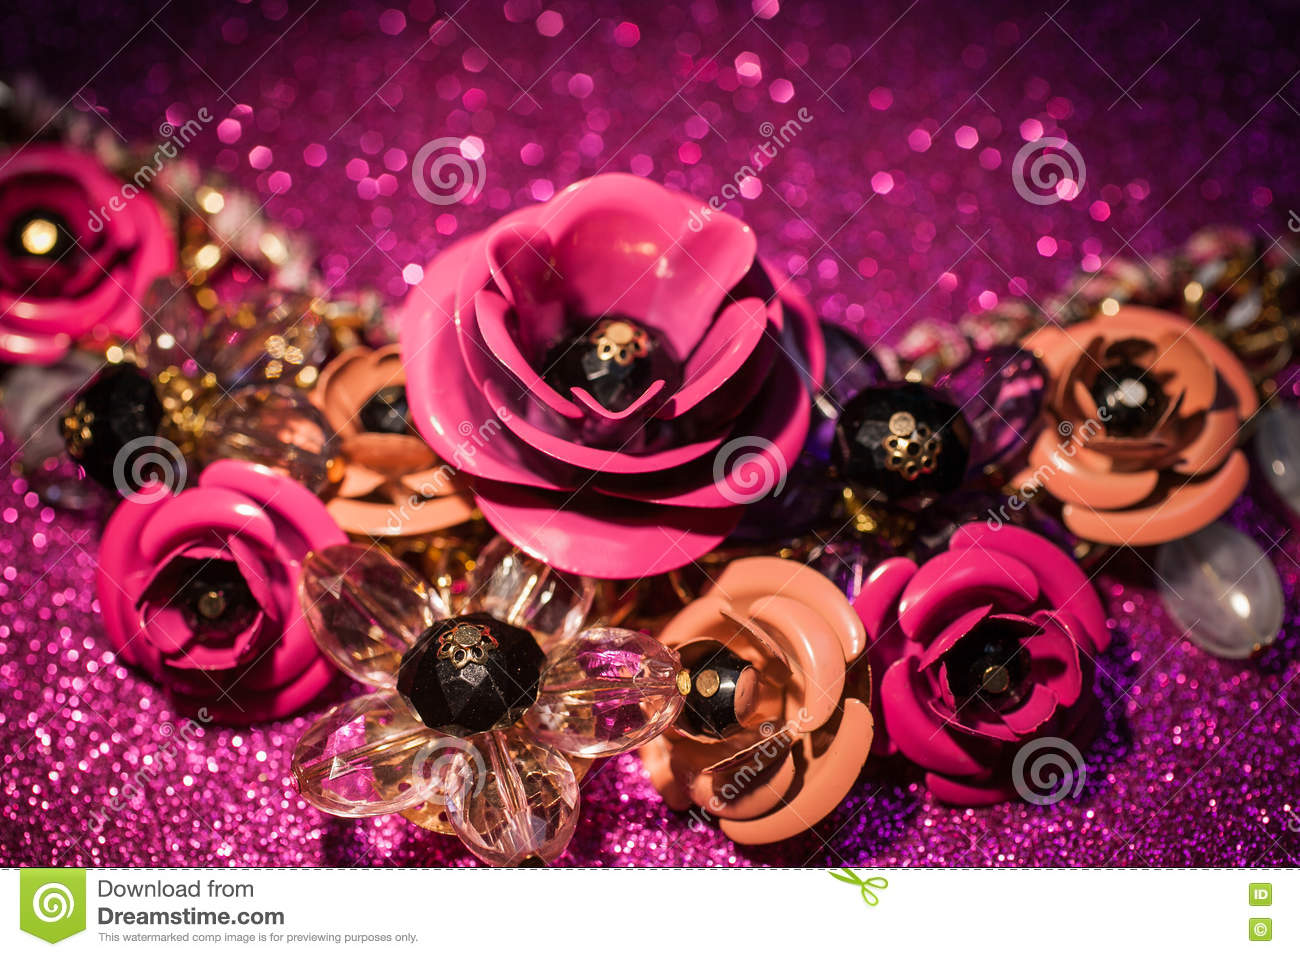 Jewelry Background With Luxury Flowers On Pink Glitter Stock Photo